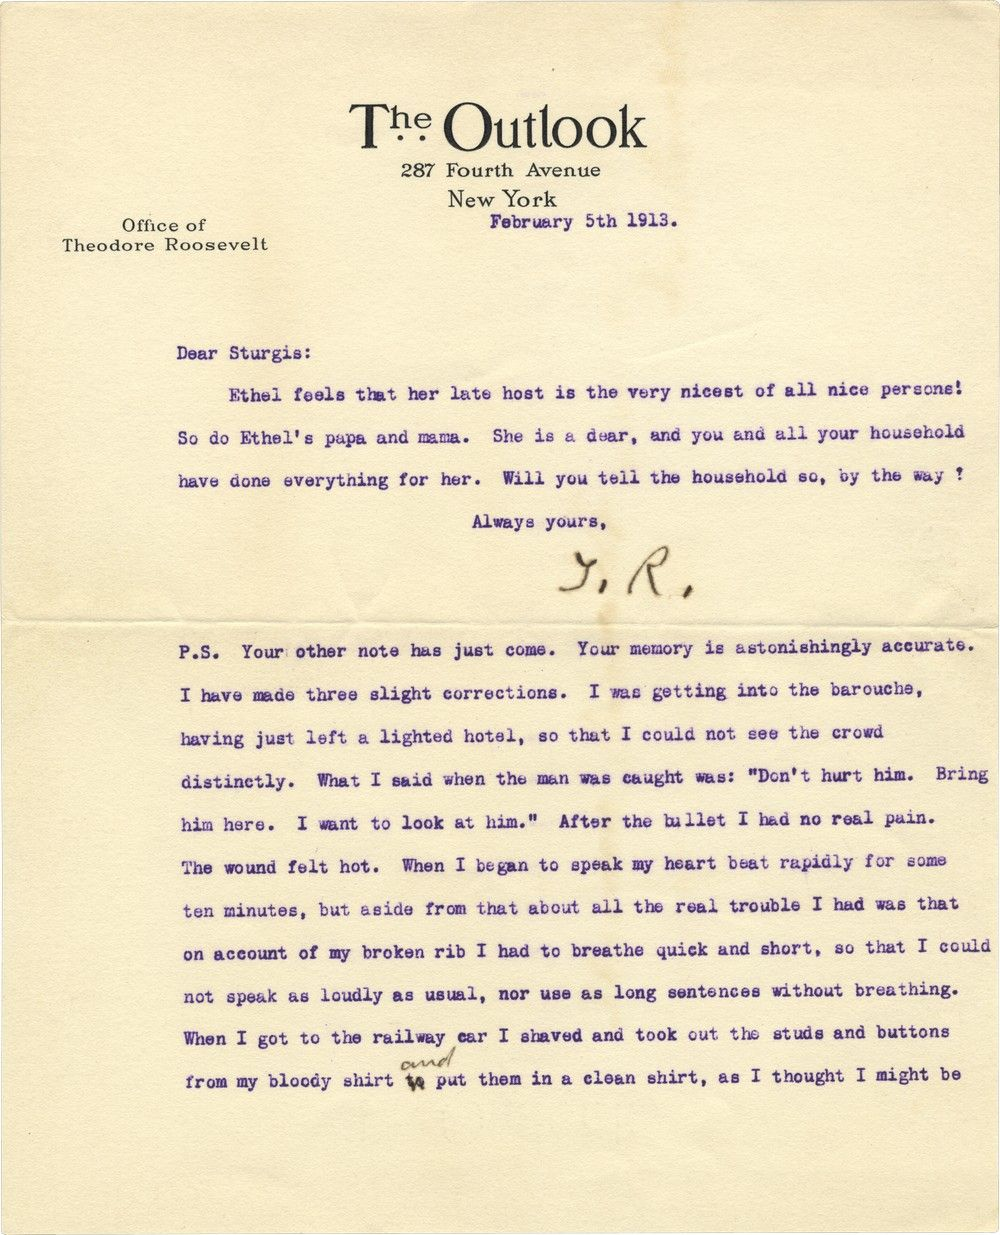 Theodore Roosevelt Comments On, and Then Annotates, a Manuscript Detailing the Attempt Made on His Life